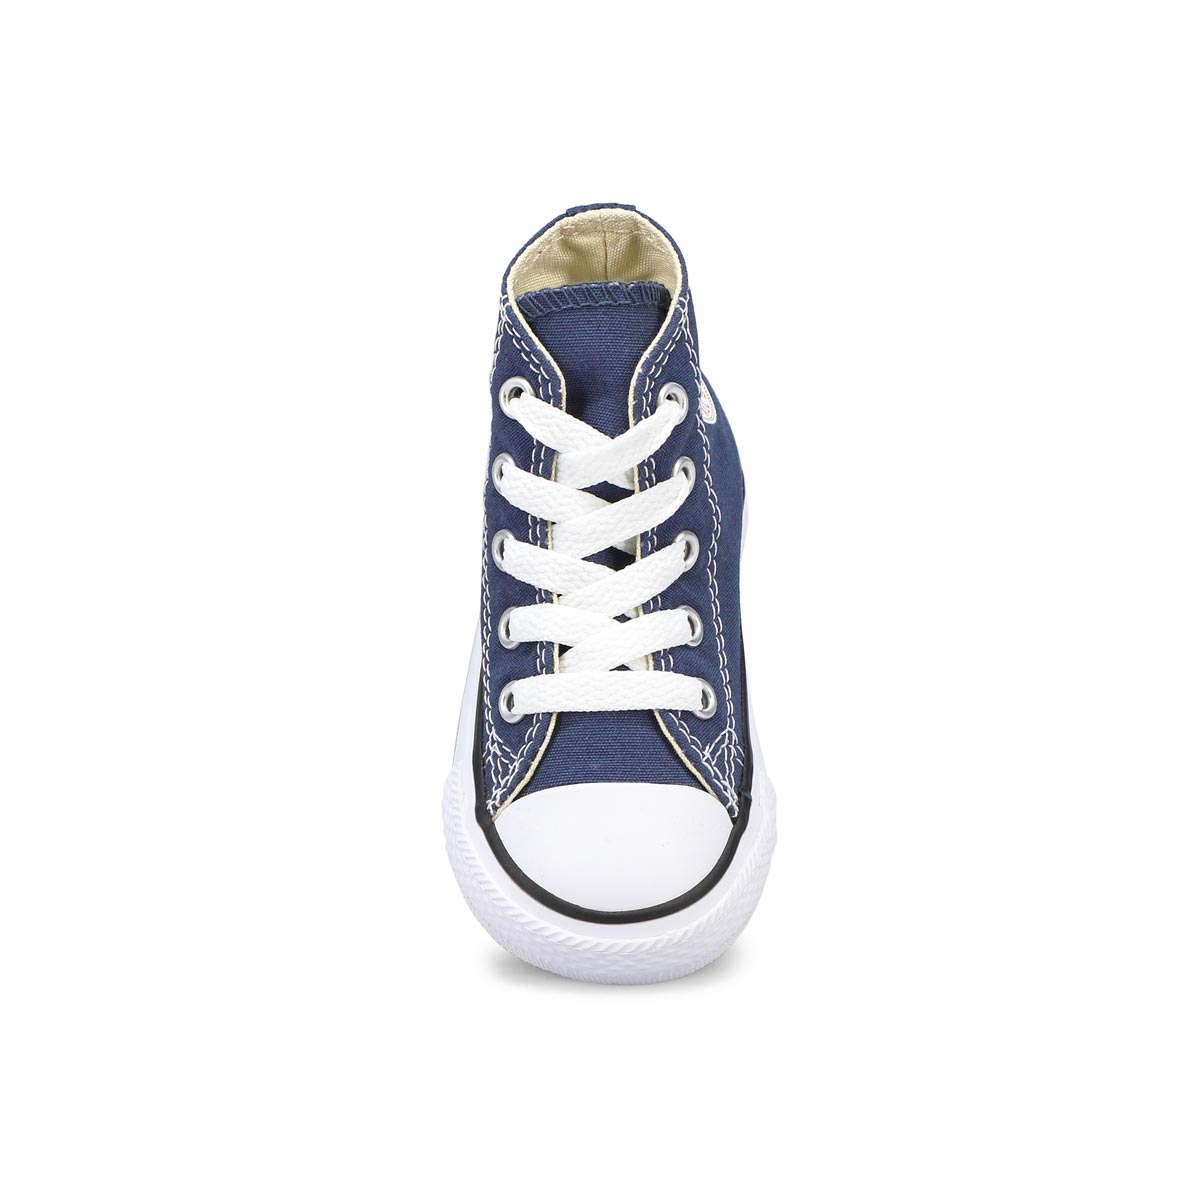 Infs CTAS Core navy high top sneaker